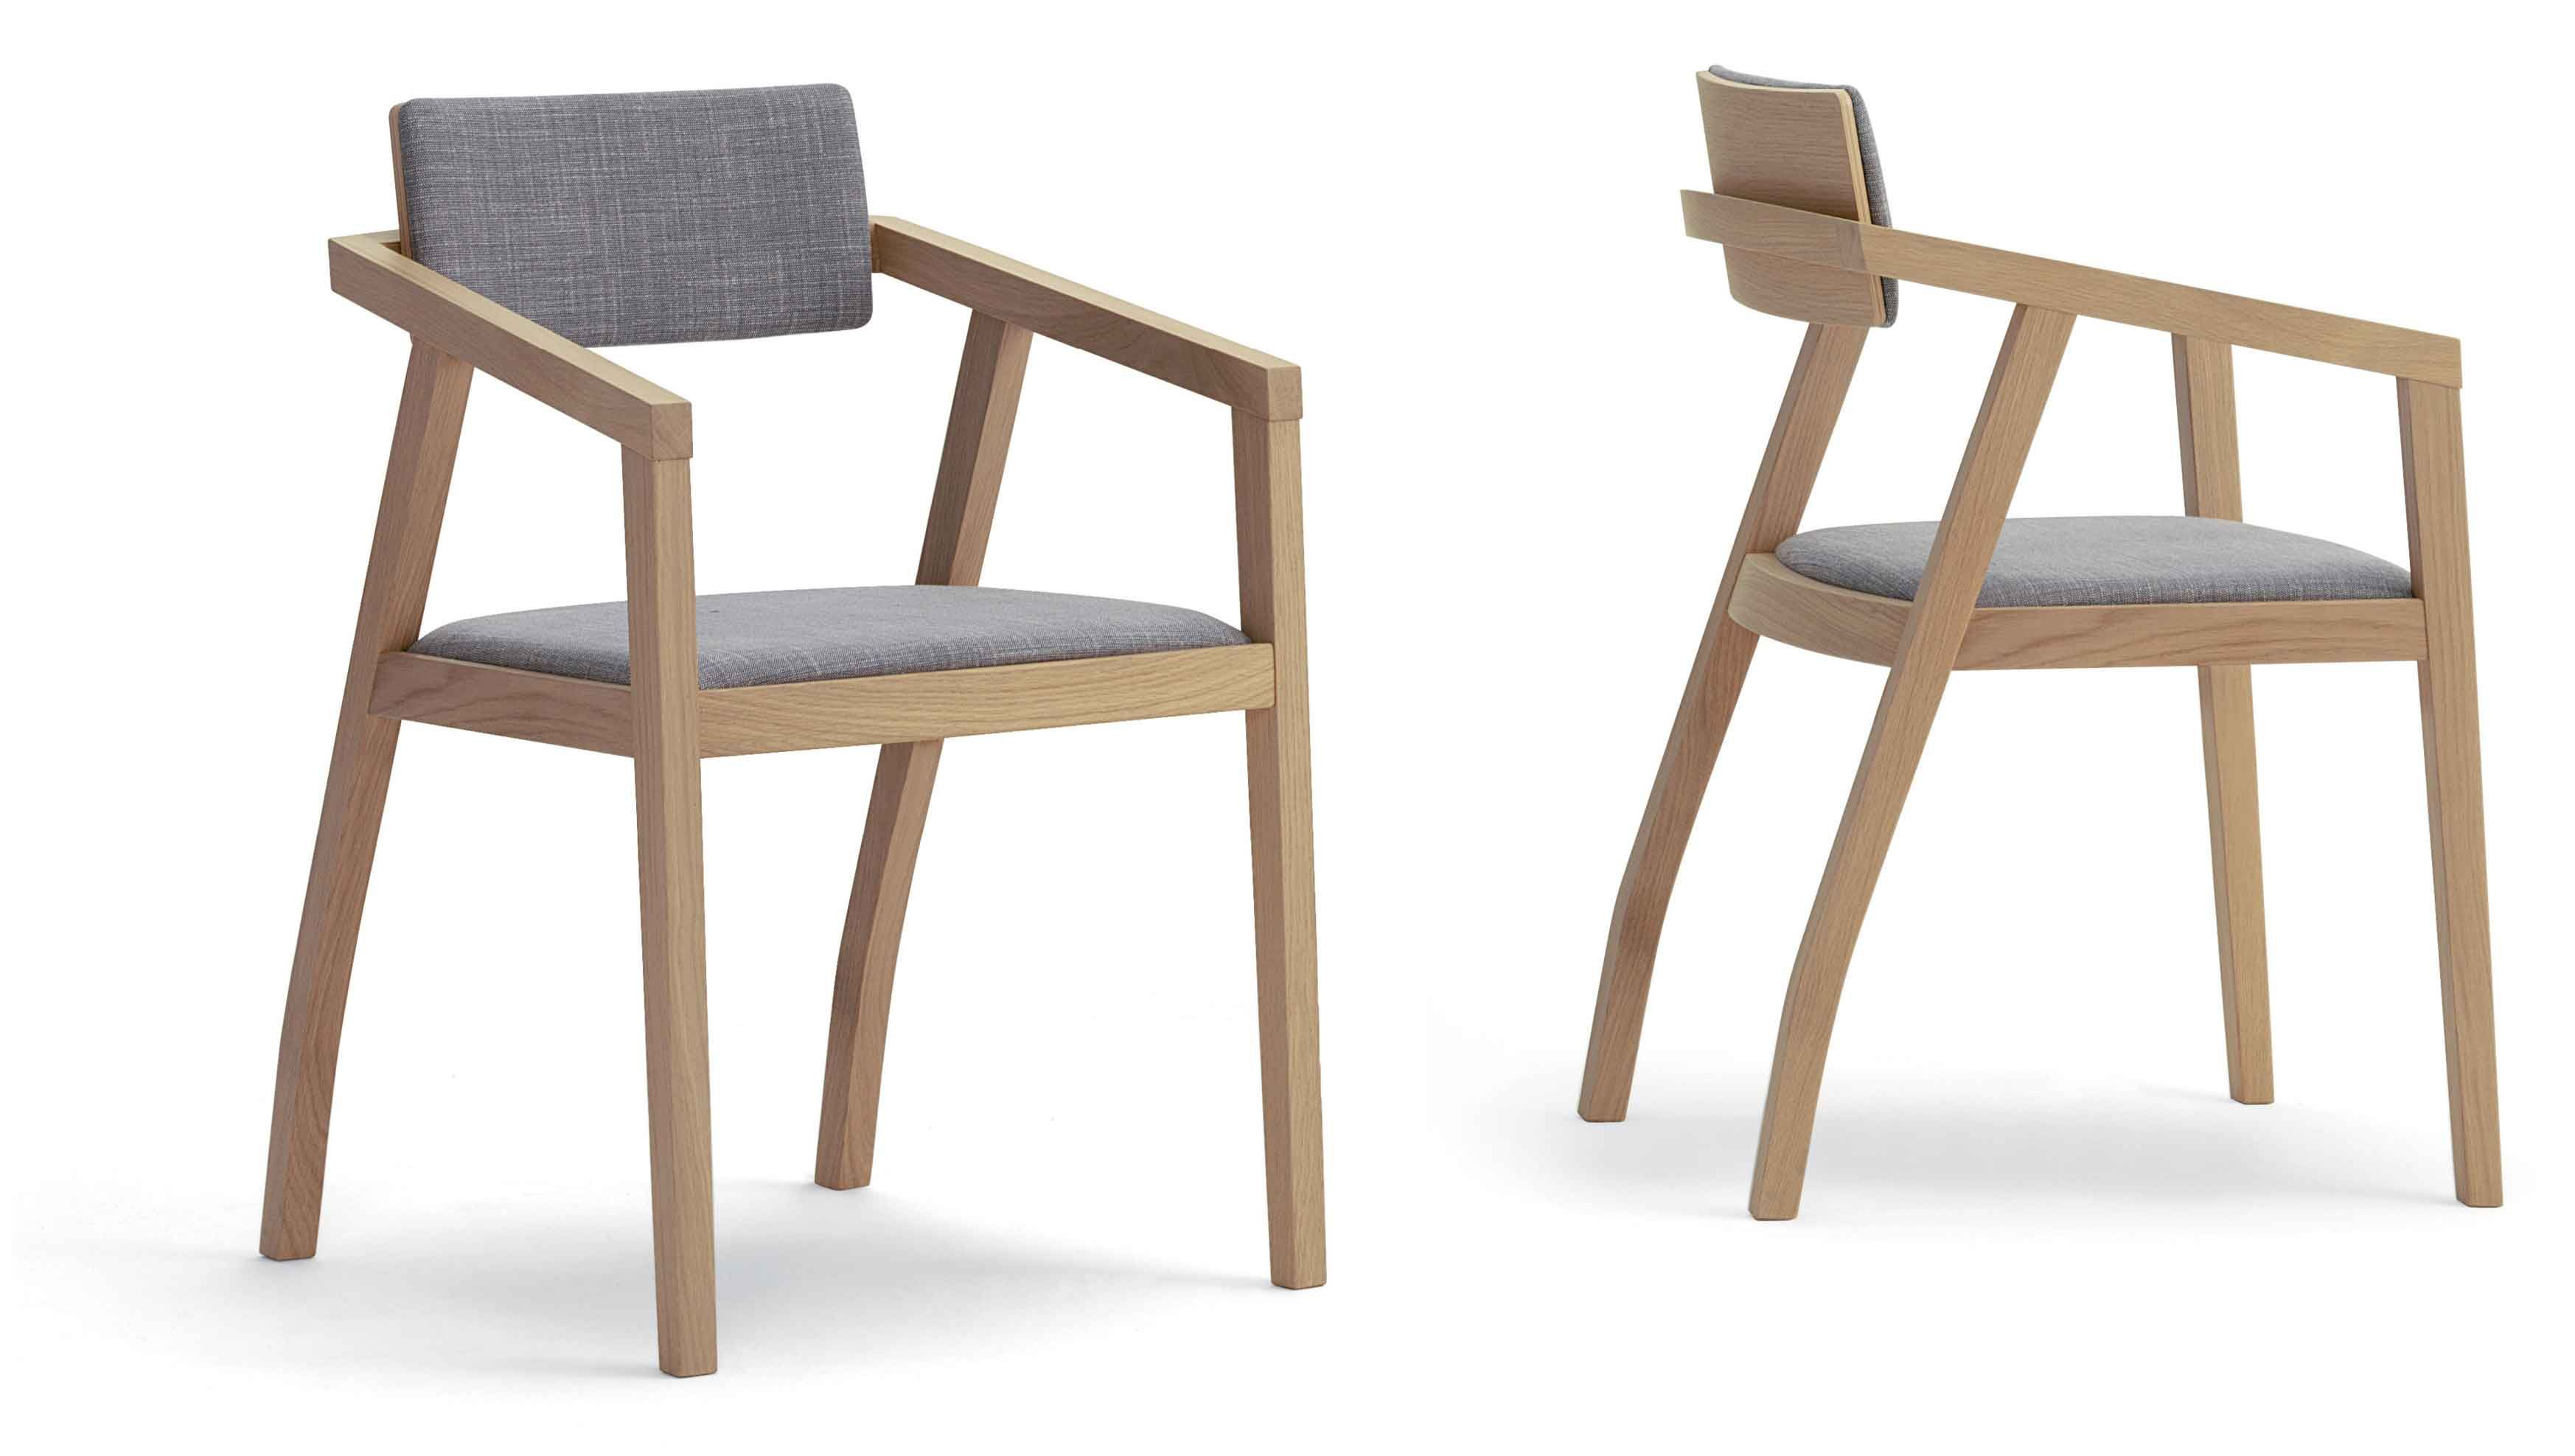 Aki 2.0 Upholstered arm chair with wood frame in oak or